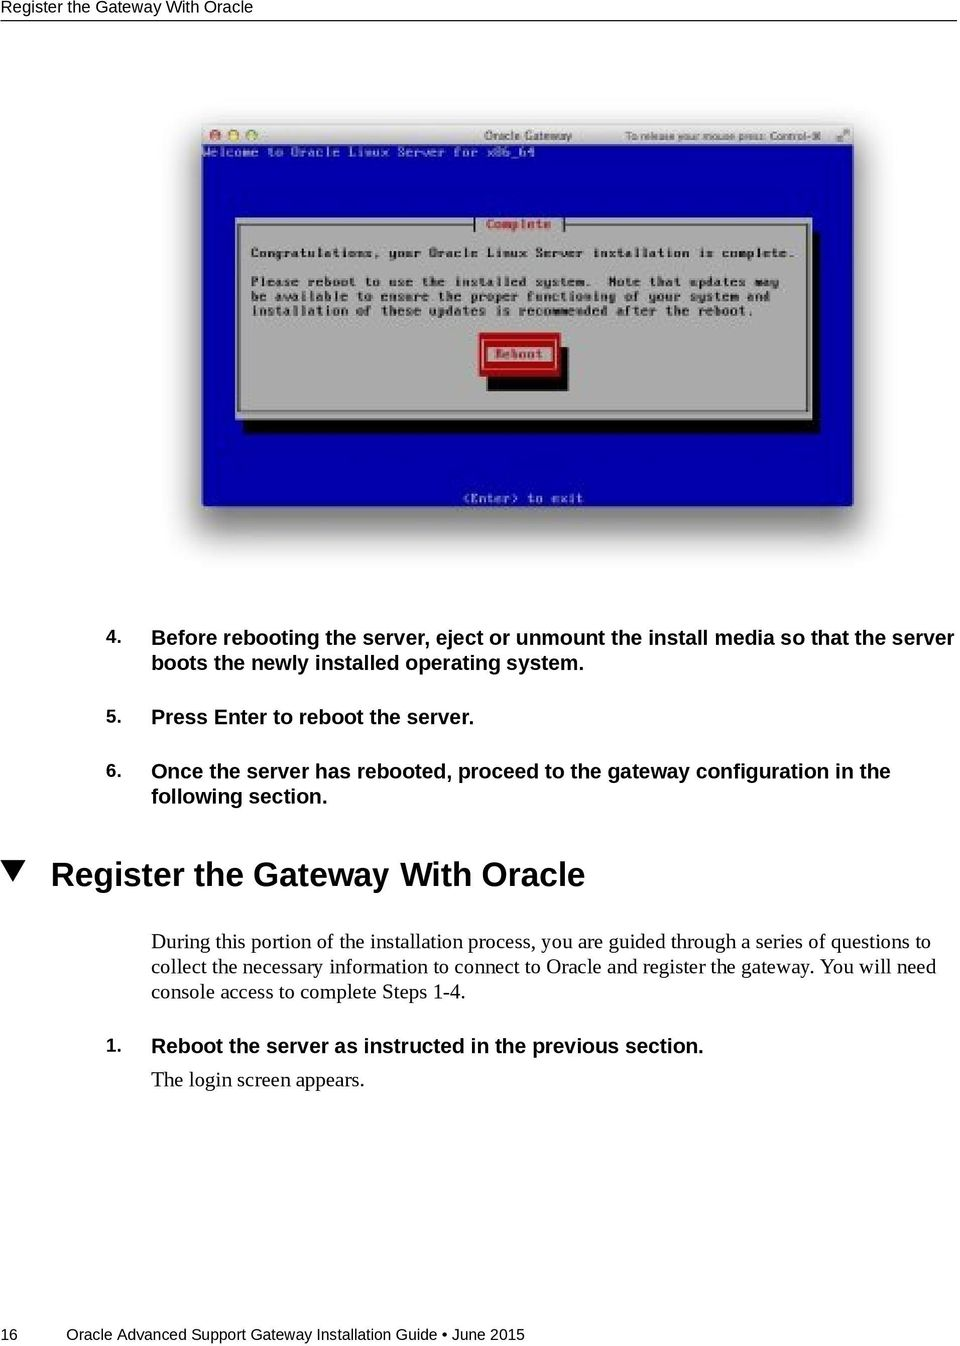 Register the Gateway With Oracle During this portion of the installation process, you are guided through a series of questions to collect the necessary information to connect